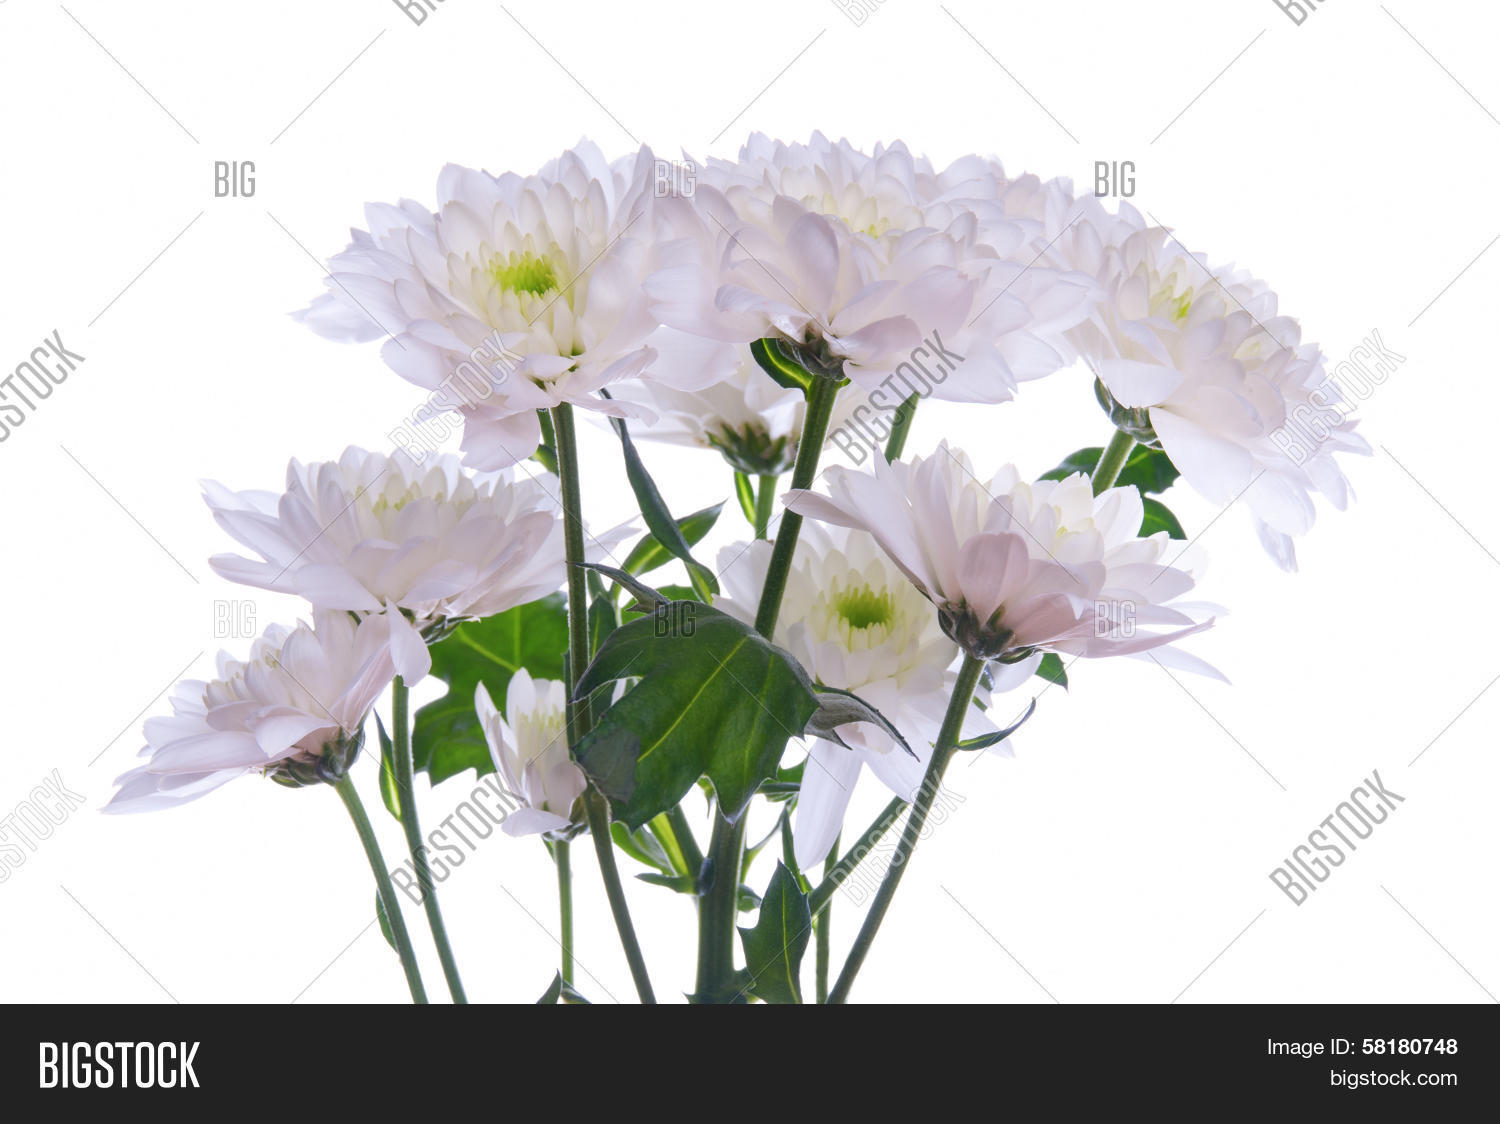 Bunch White Flowers Image Photo Free Trial Bigstock